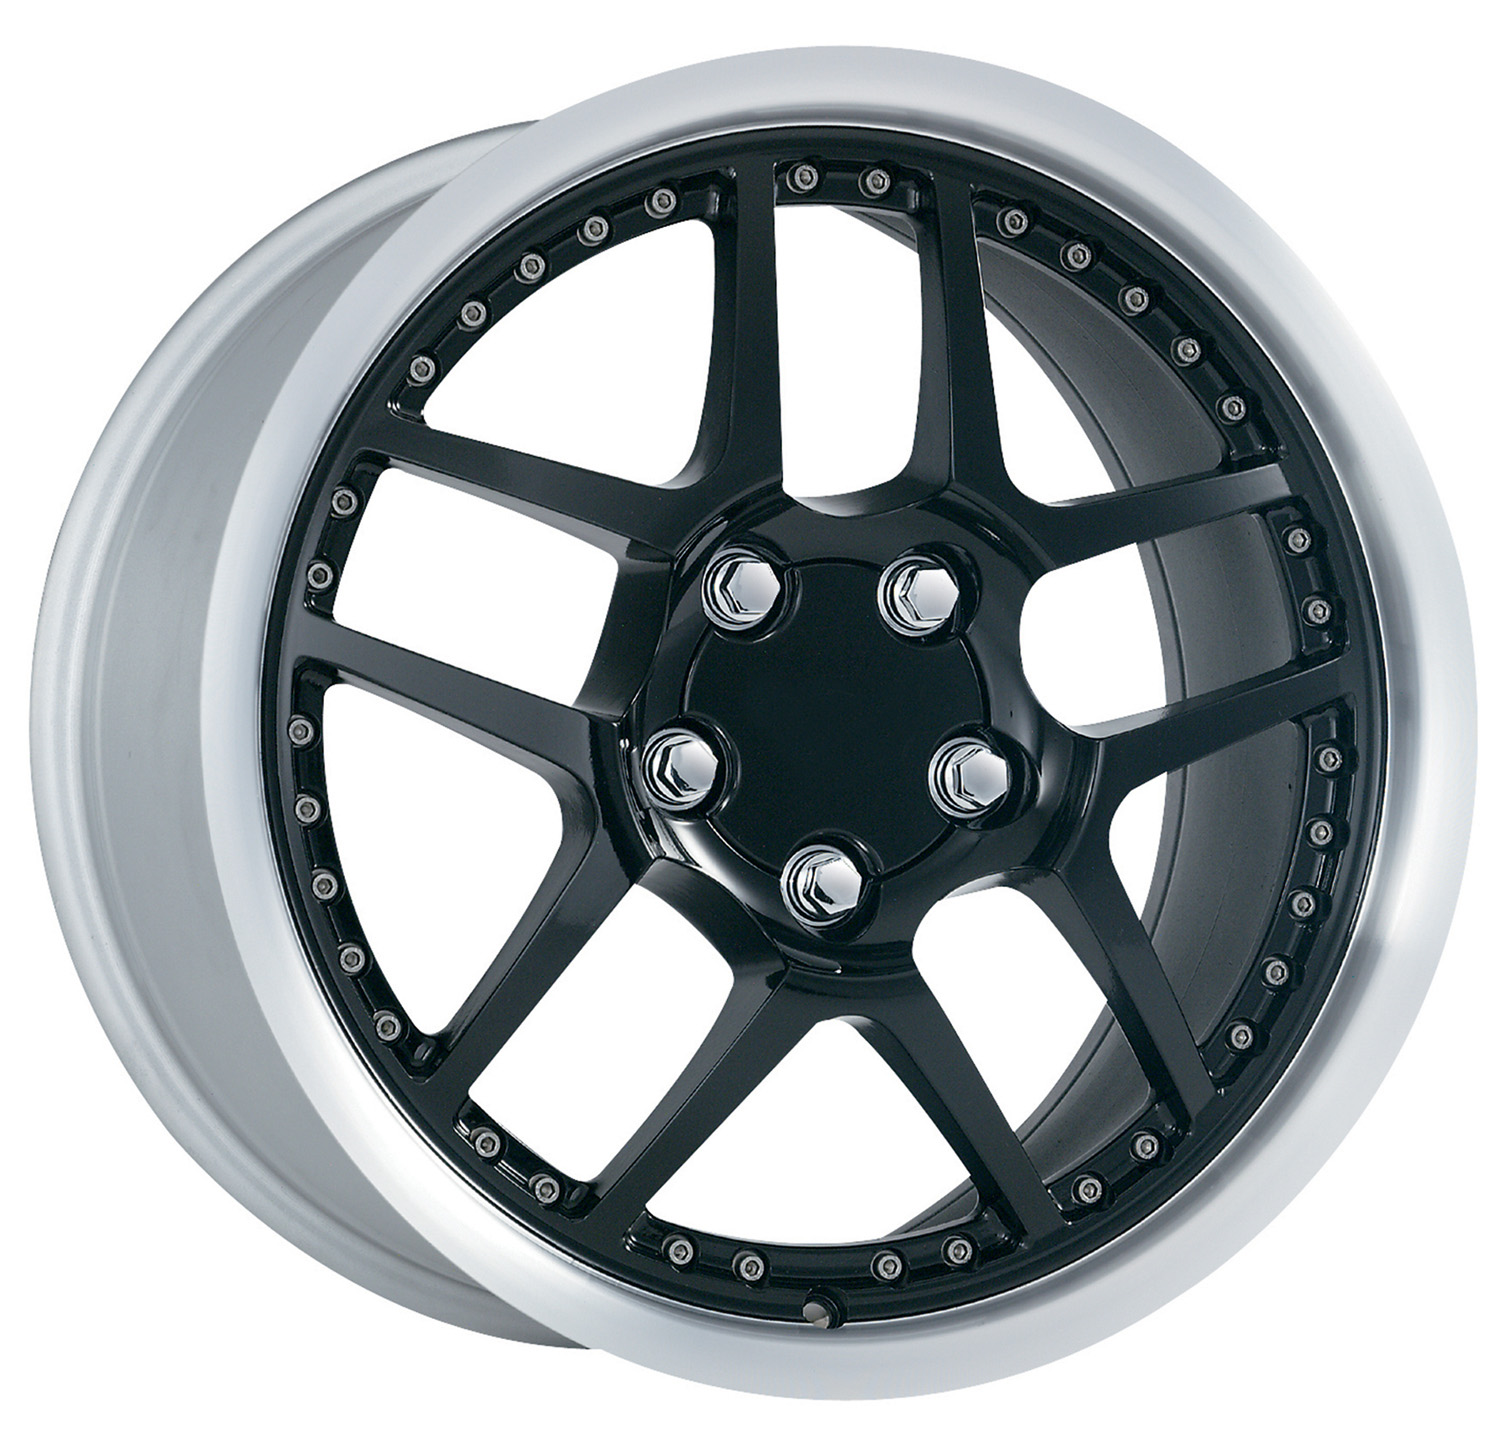 Chevrolet Corvette 1997-2004 18x10.5 5x4.75 +58 -C5 Z06 Style Wheel - Motorsport Black Machine Lip With Cap